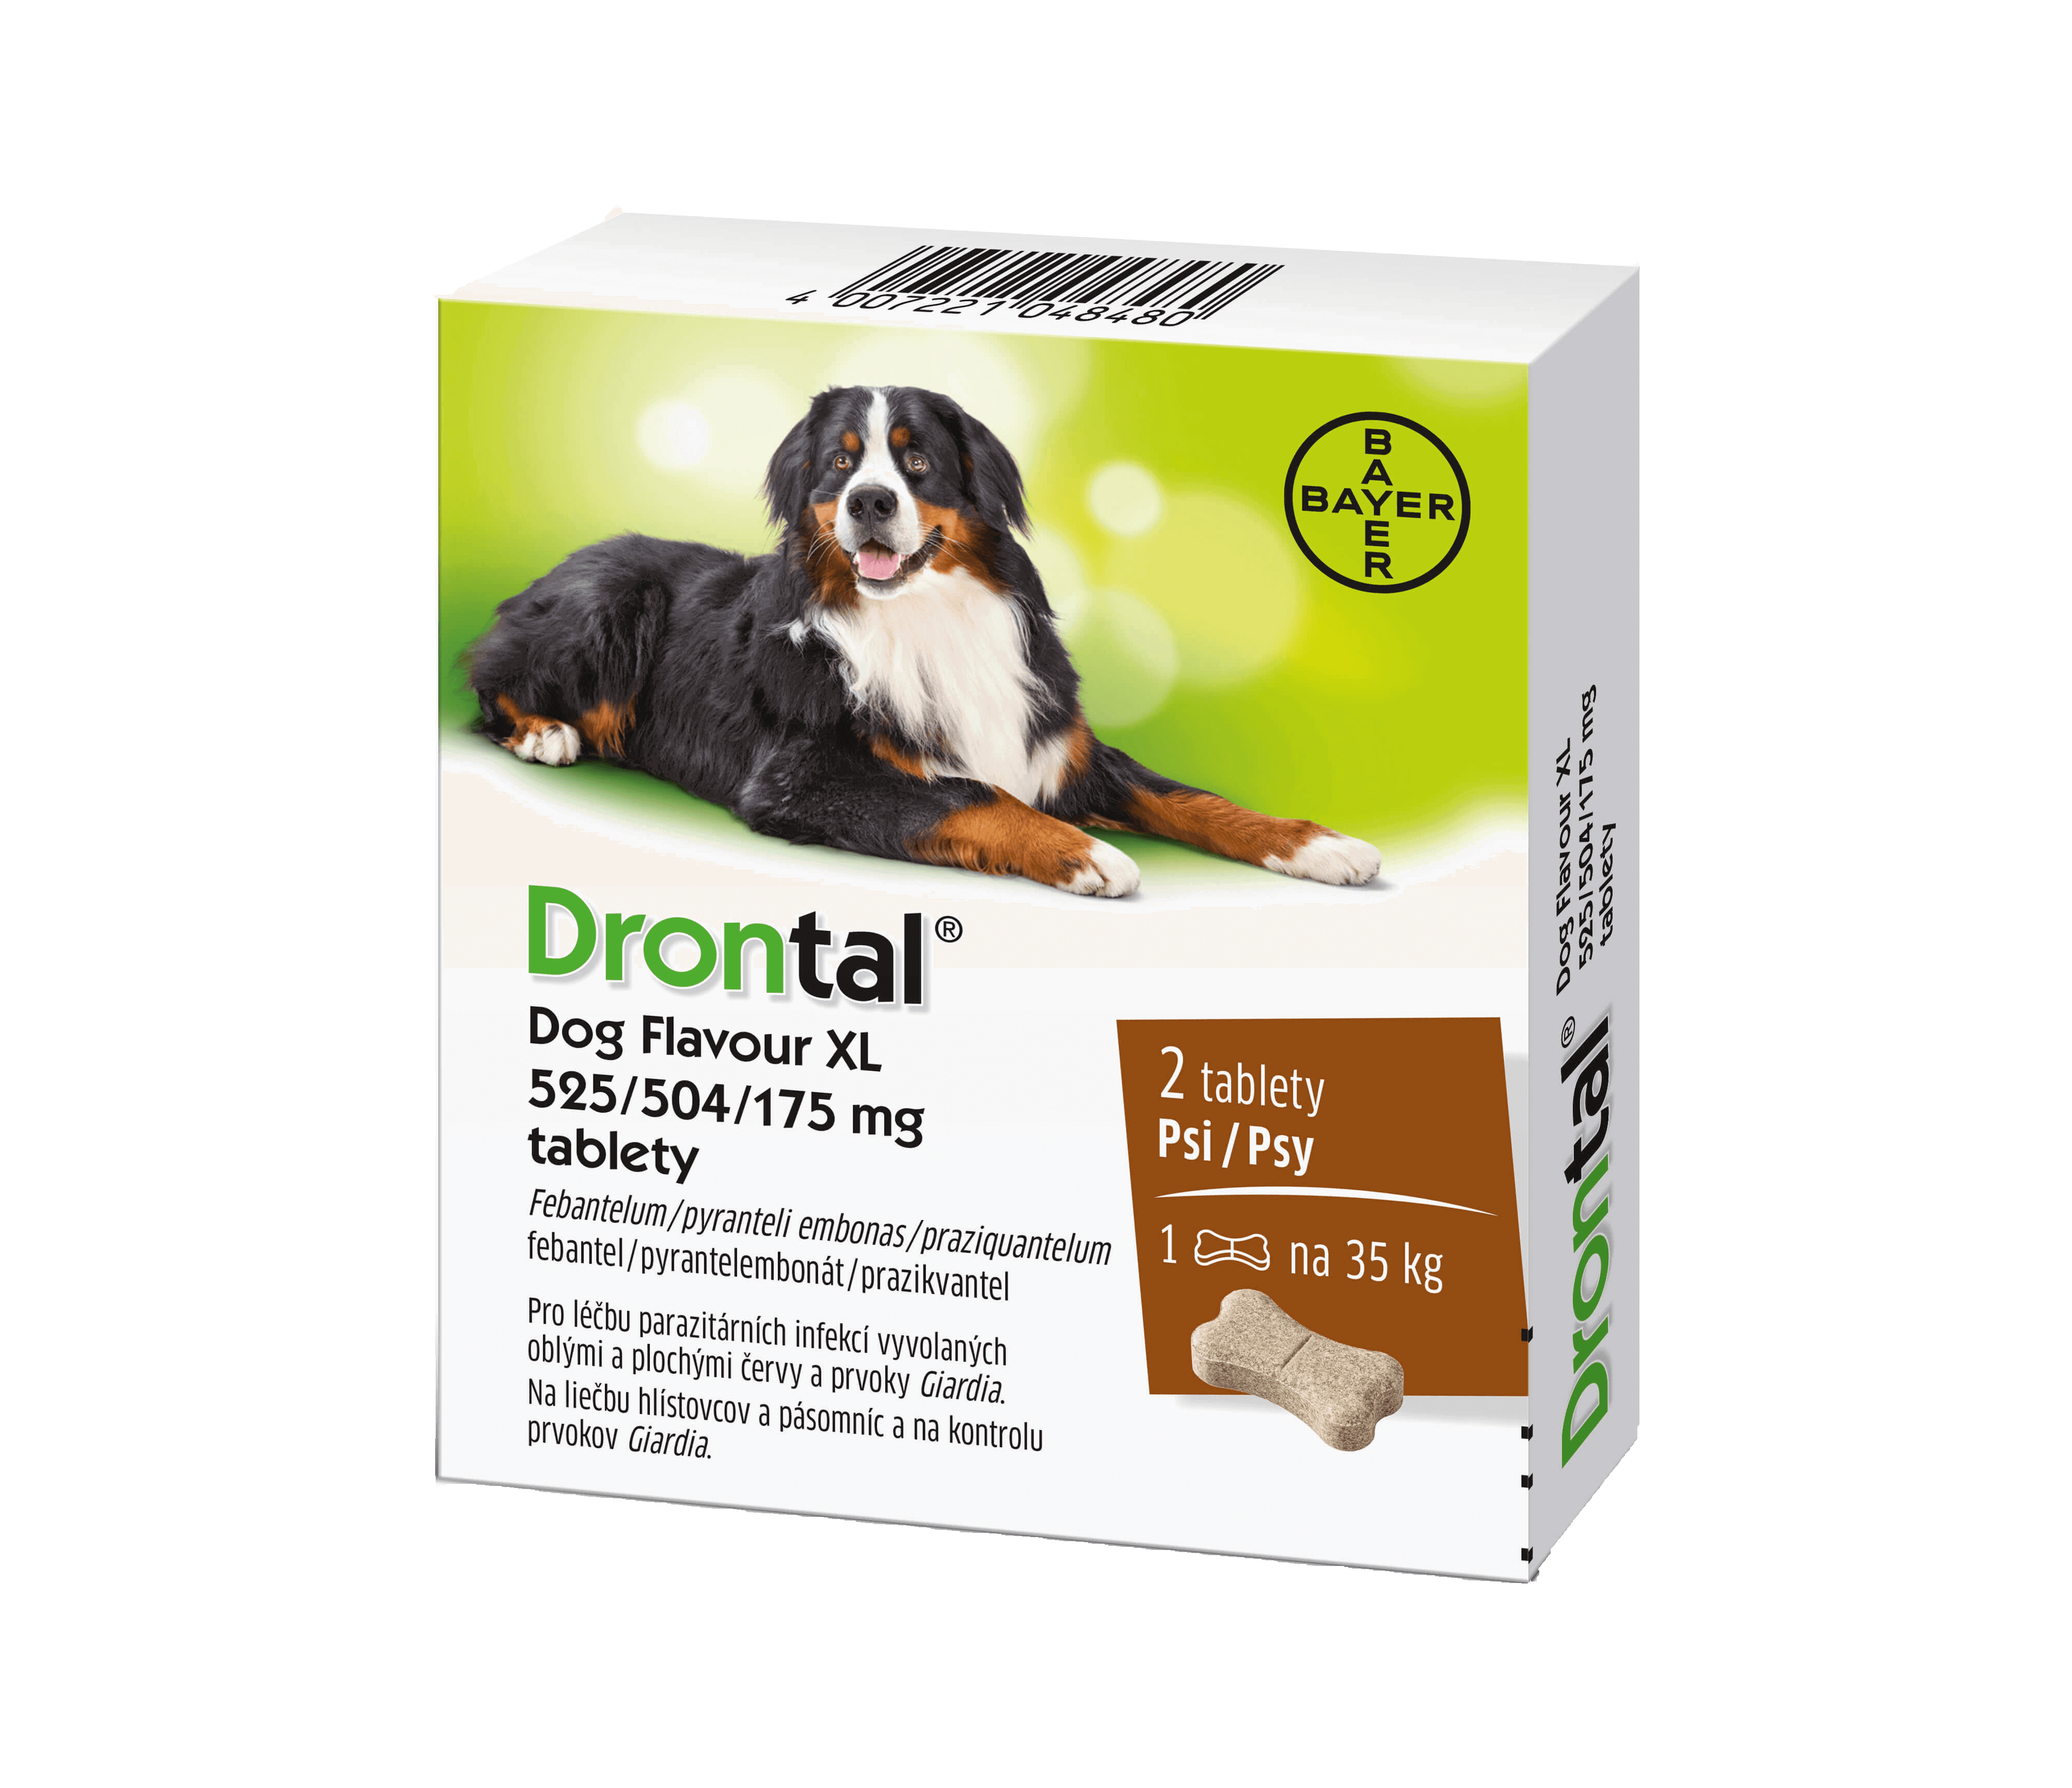 Drontal Dog Flavour XL 175 mg 2 tablety